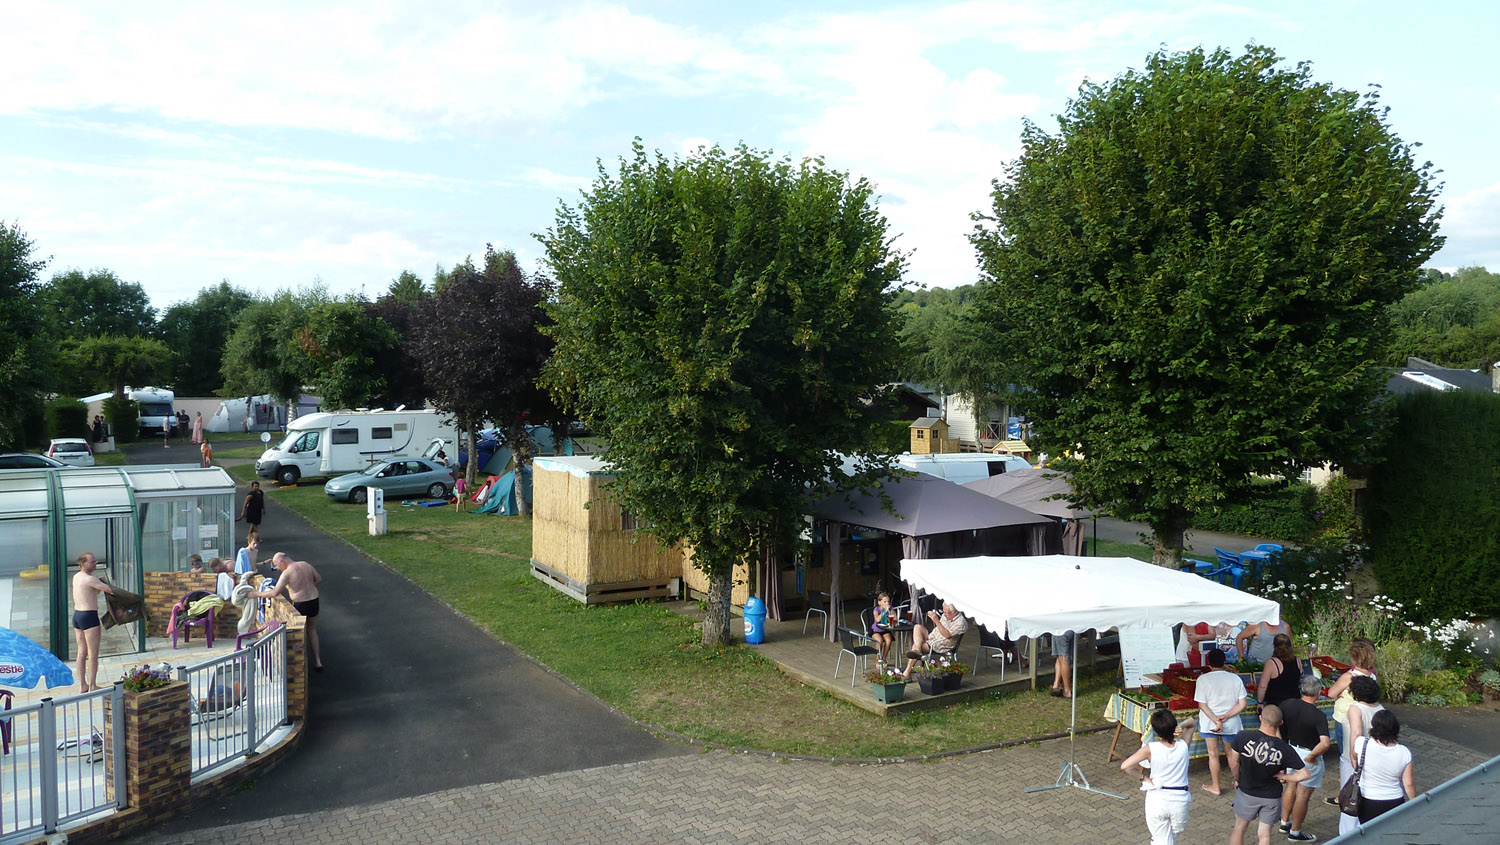 Frhpa les campings puy de d me 63 for Camping massif central avec piscine